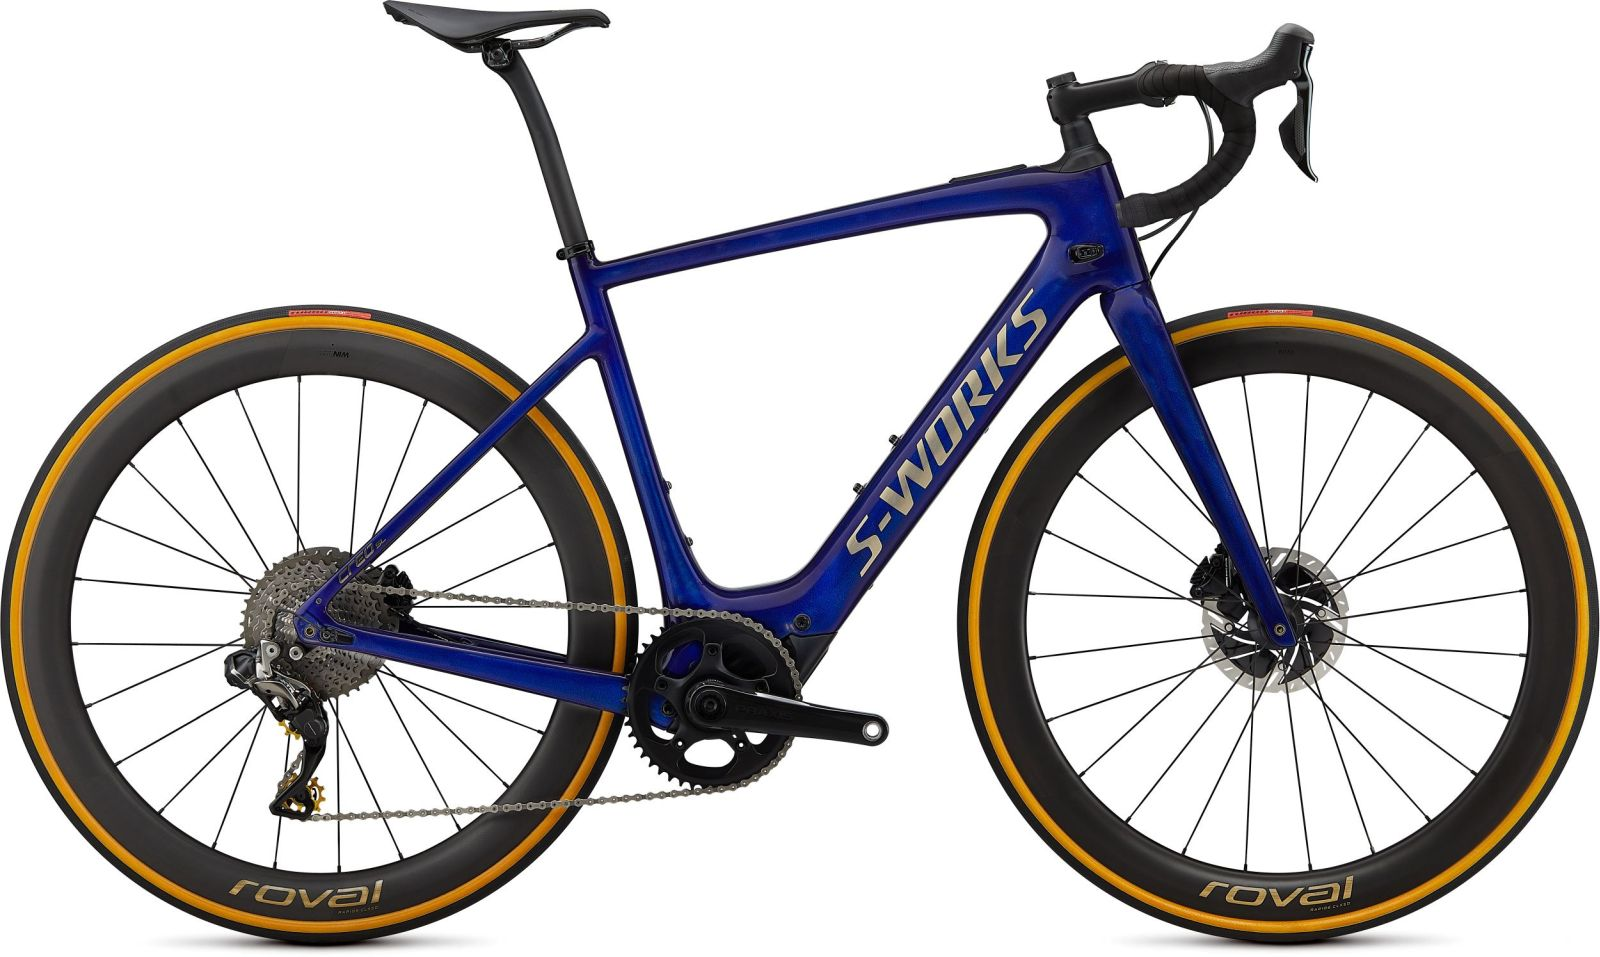 Specialized S-Works Creo SL Founders Edition - spectral blue brushed gold S